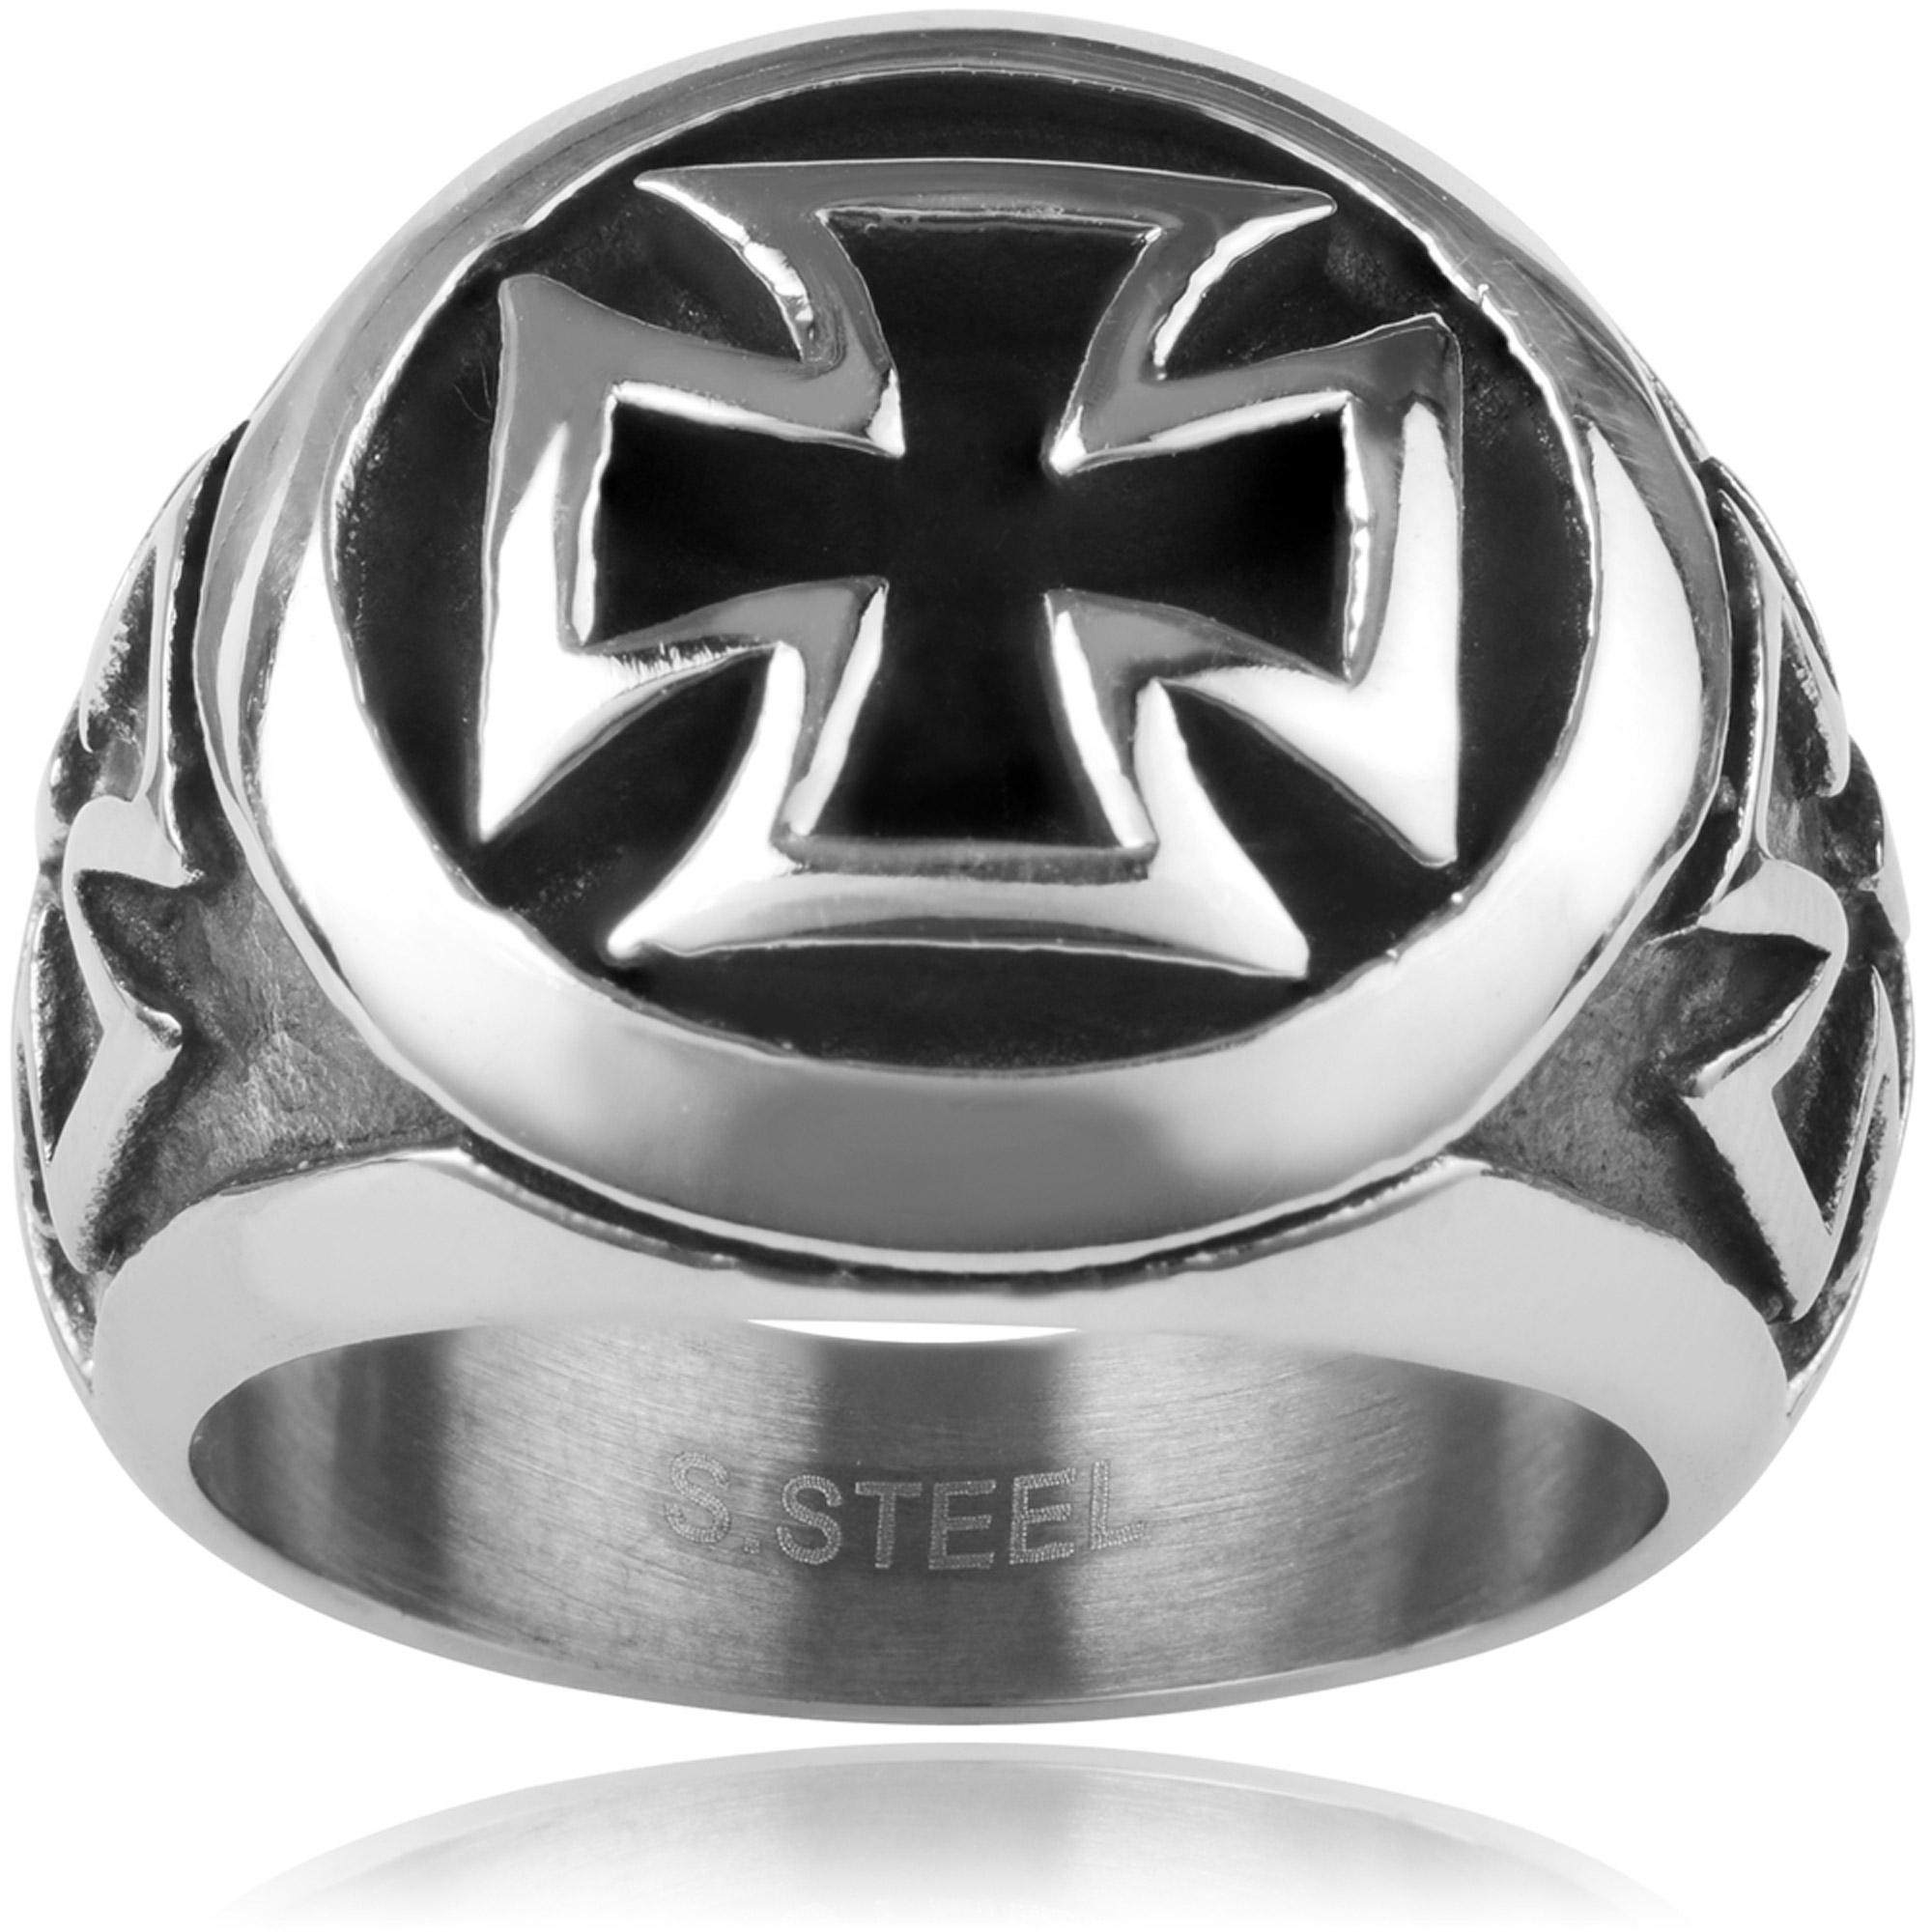 Daxx Men's Stainless Steel Cross Fashion Ring